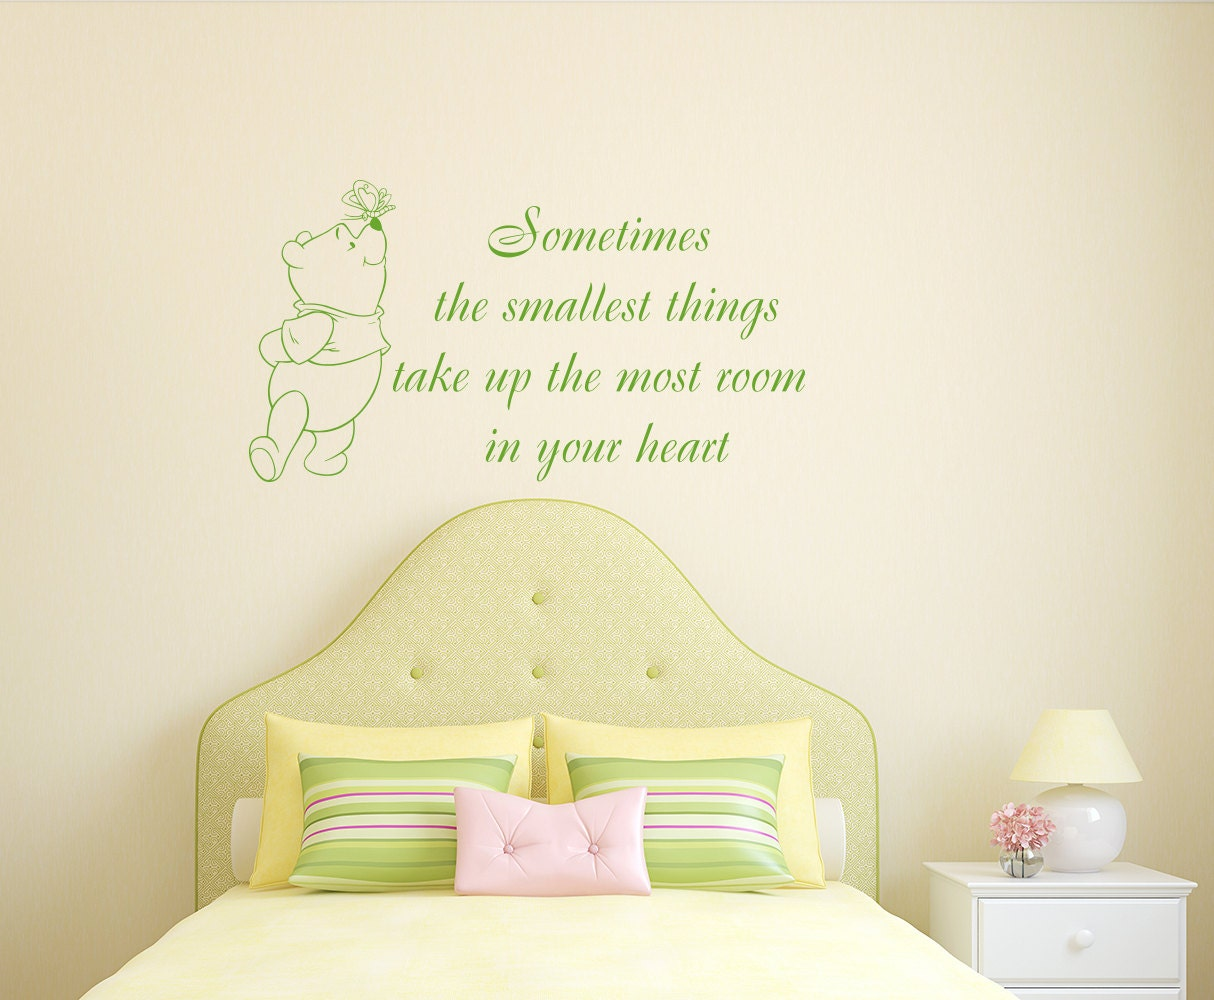 Winnie The Pooh Wall Decals Nursery Quote Small Thing in Heart